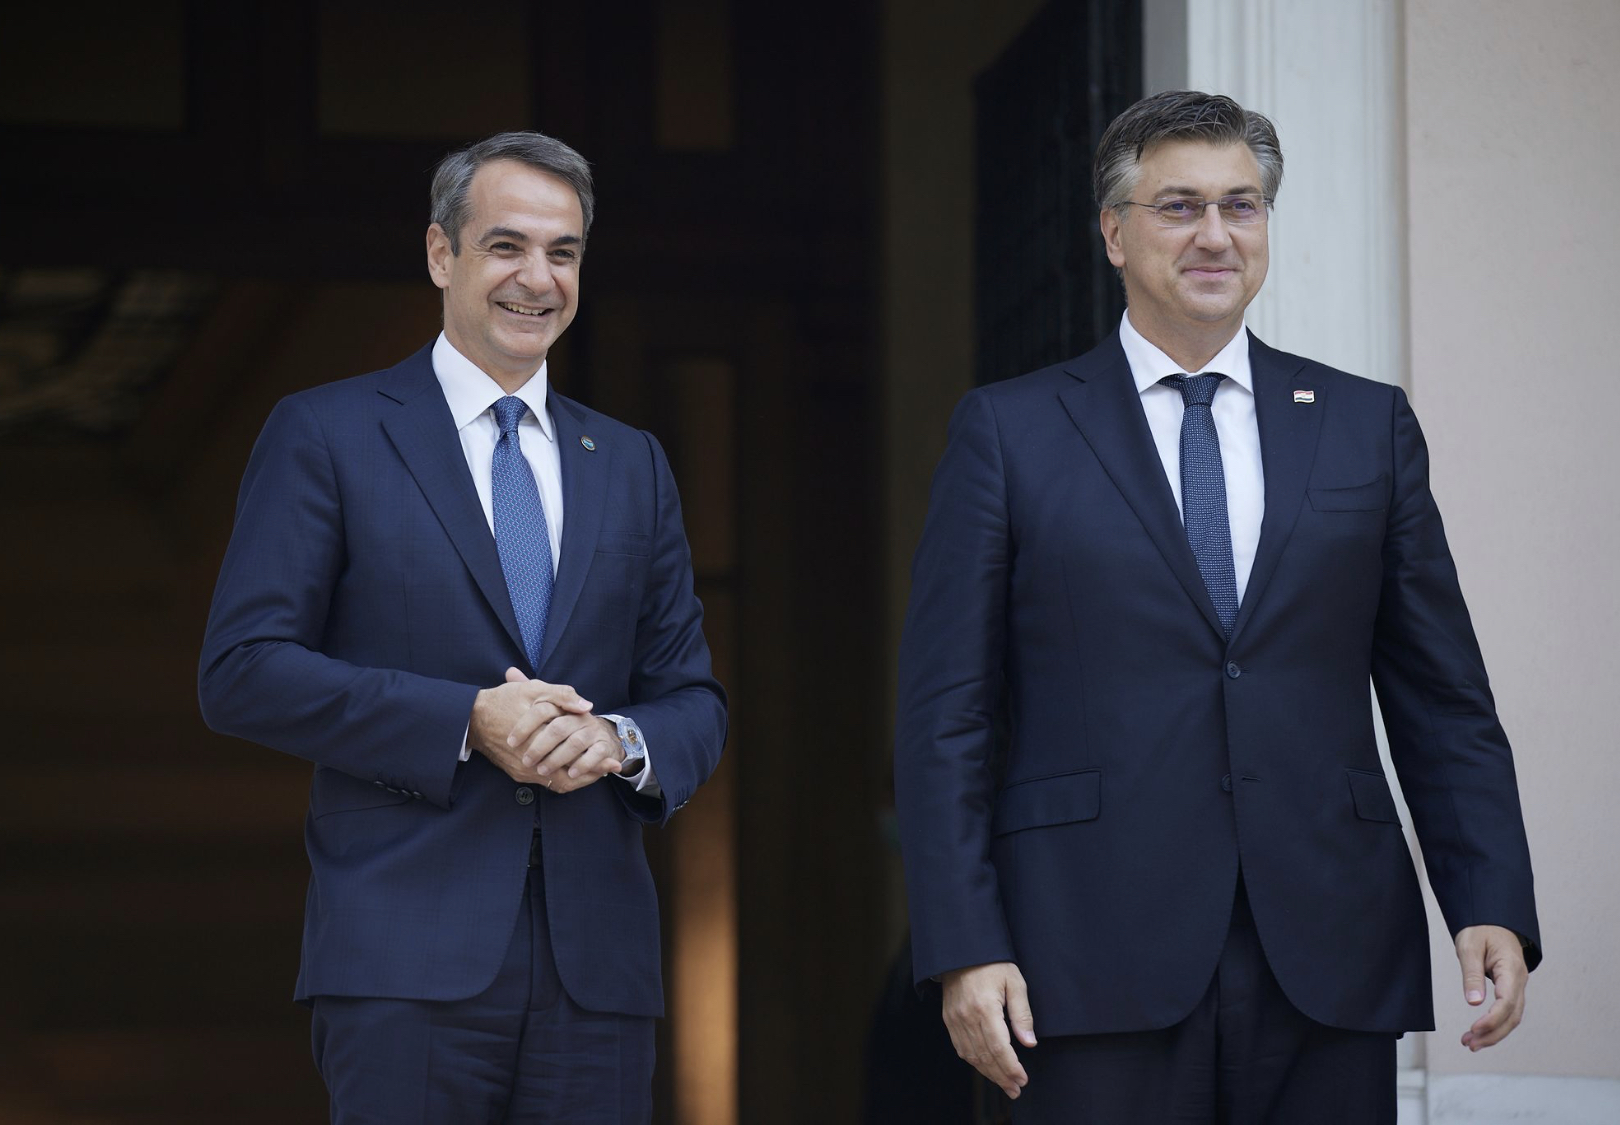 The Greek PM received the PM of Croatia in Athens